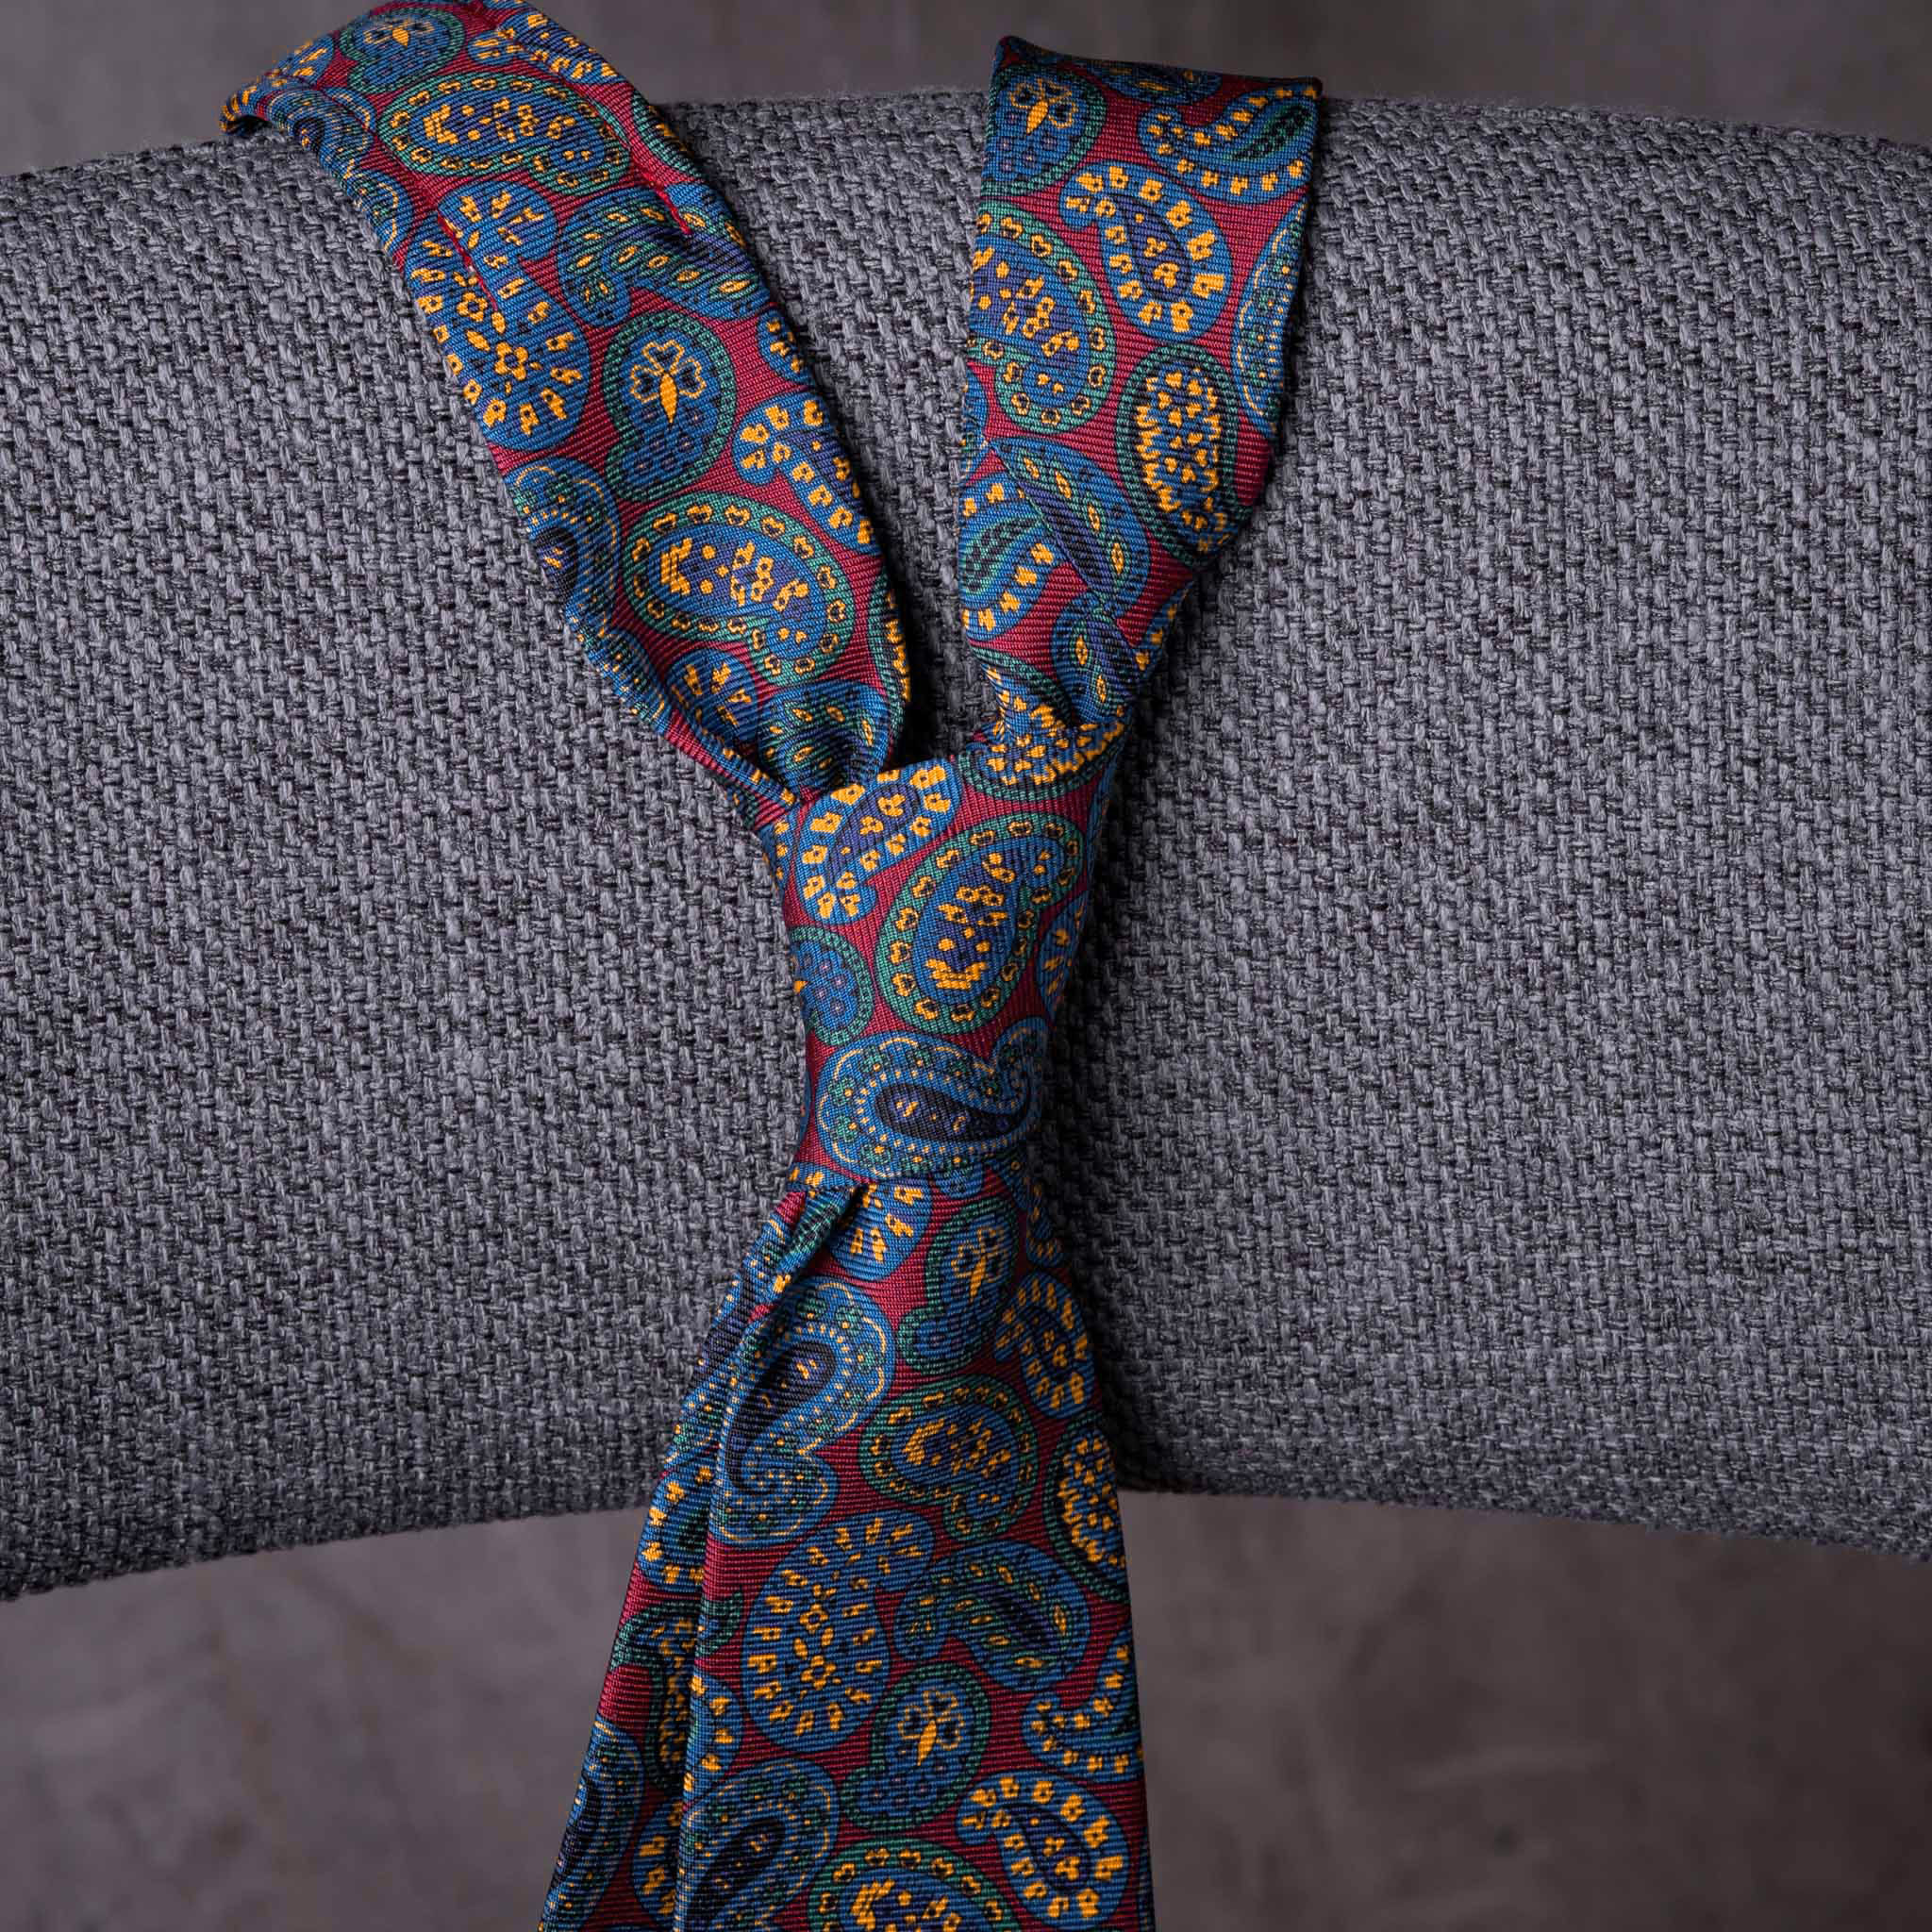 PRINTED SILK-0448-Tie-Initials-Corbata-Iniciales-The-Seelk-4